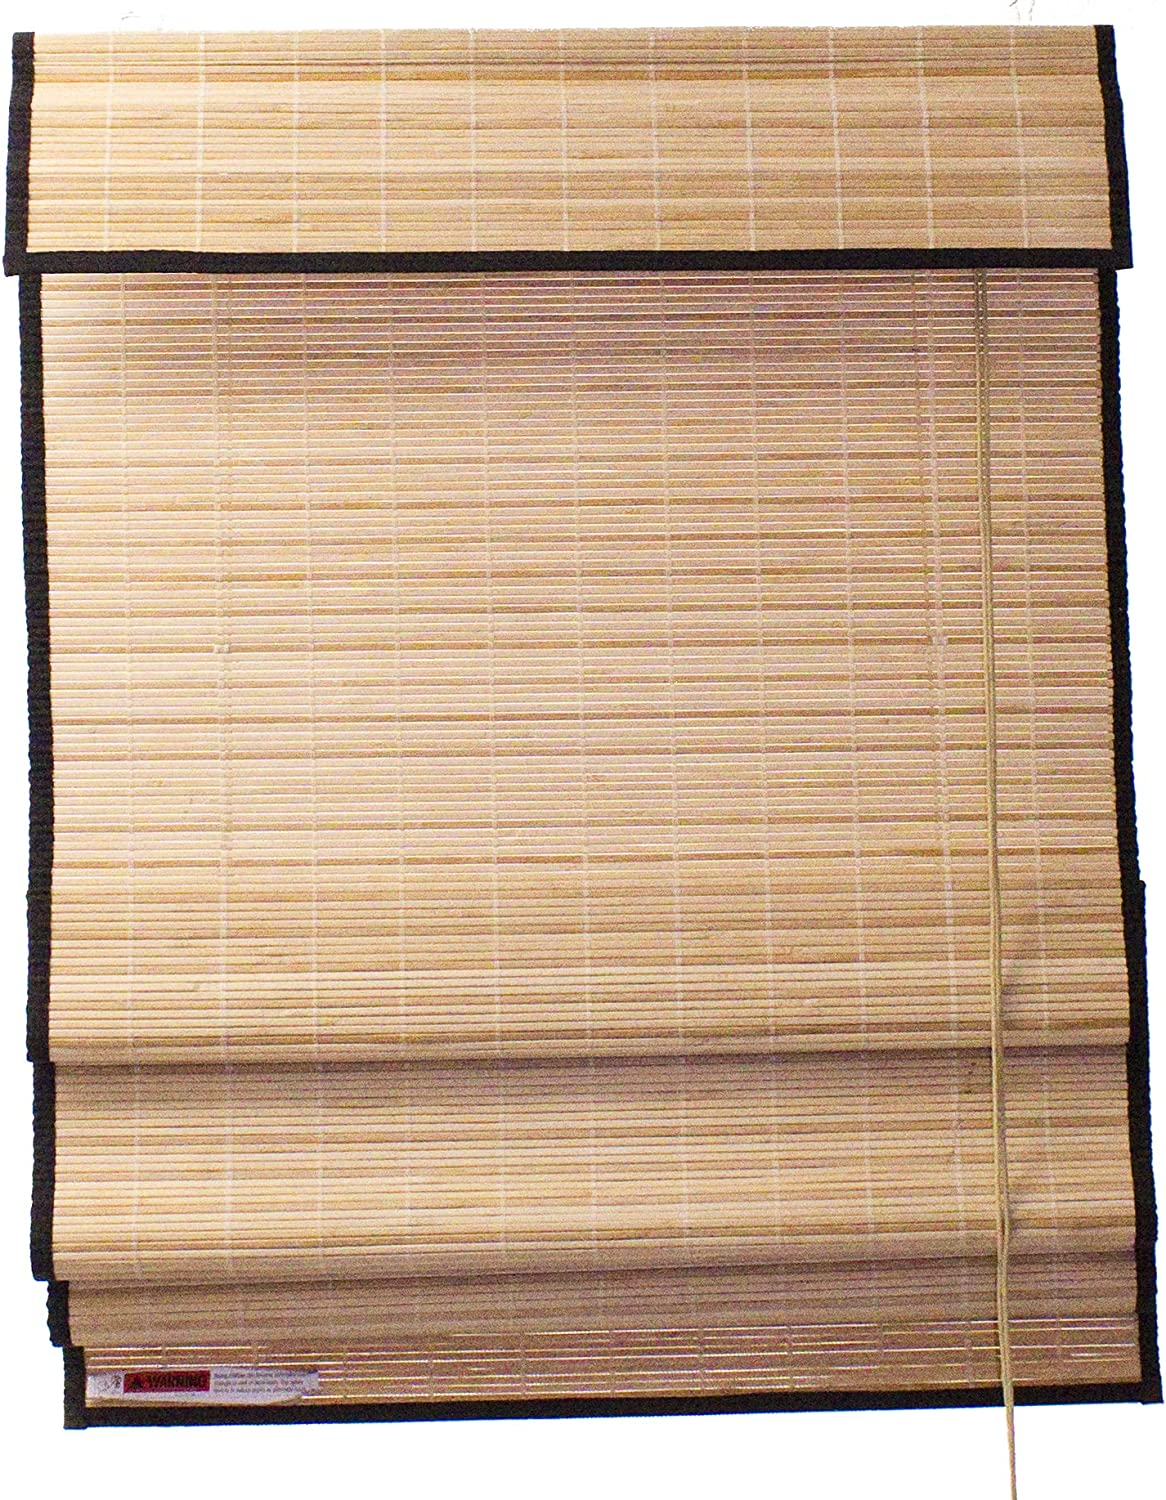 Seta Direct, Natural Bamboo Slat Roman Shade with Valance 72-Inch Width by 84-Inch Length (Black)